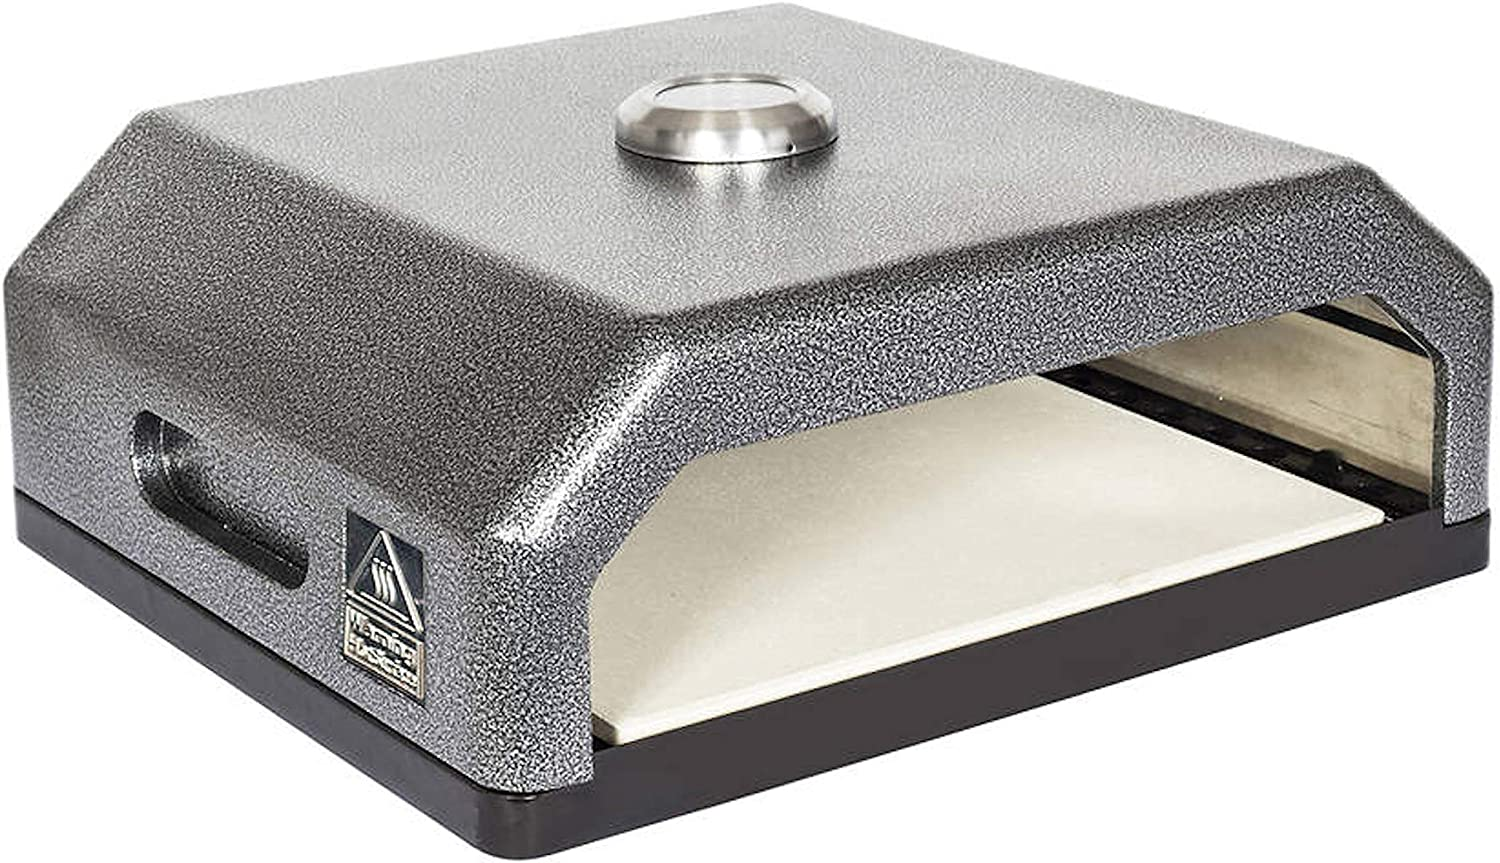 Oxford Barbecues 56255OL Gourmet Pizza Oven, Grey, 35 x 40 x 15 cm